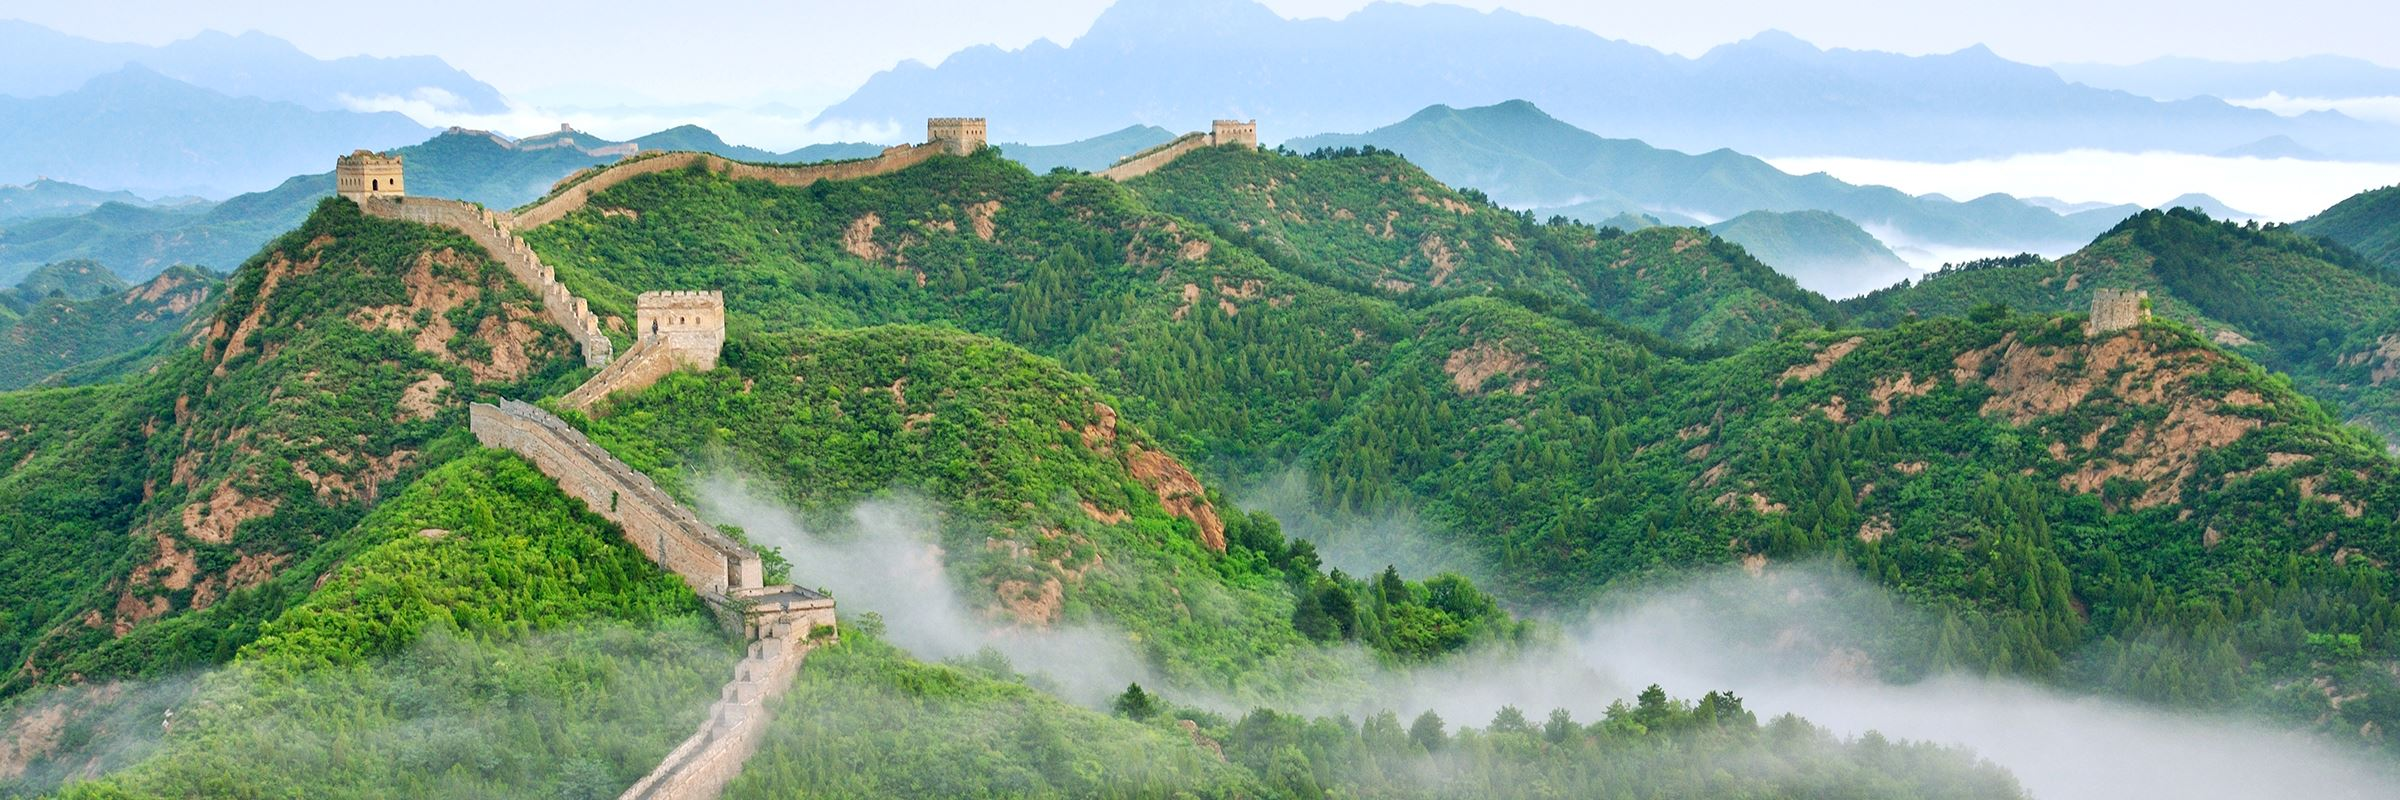 The Great Wall of China: Taking a quieter path | Travel guide | Audley  Travel